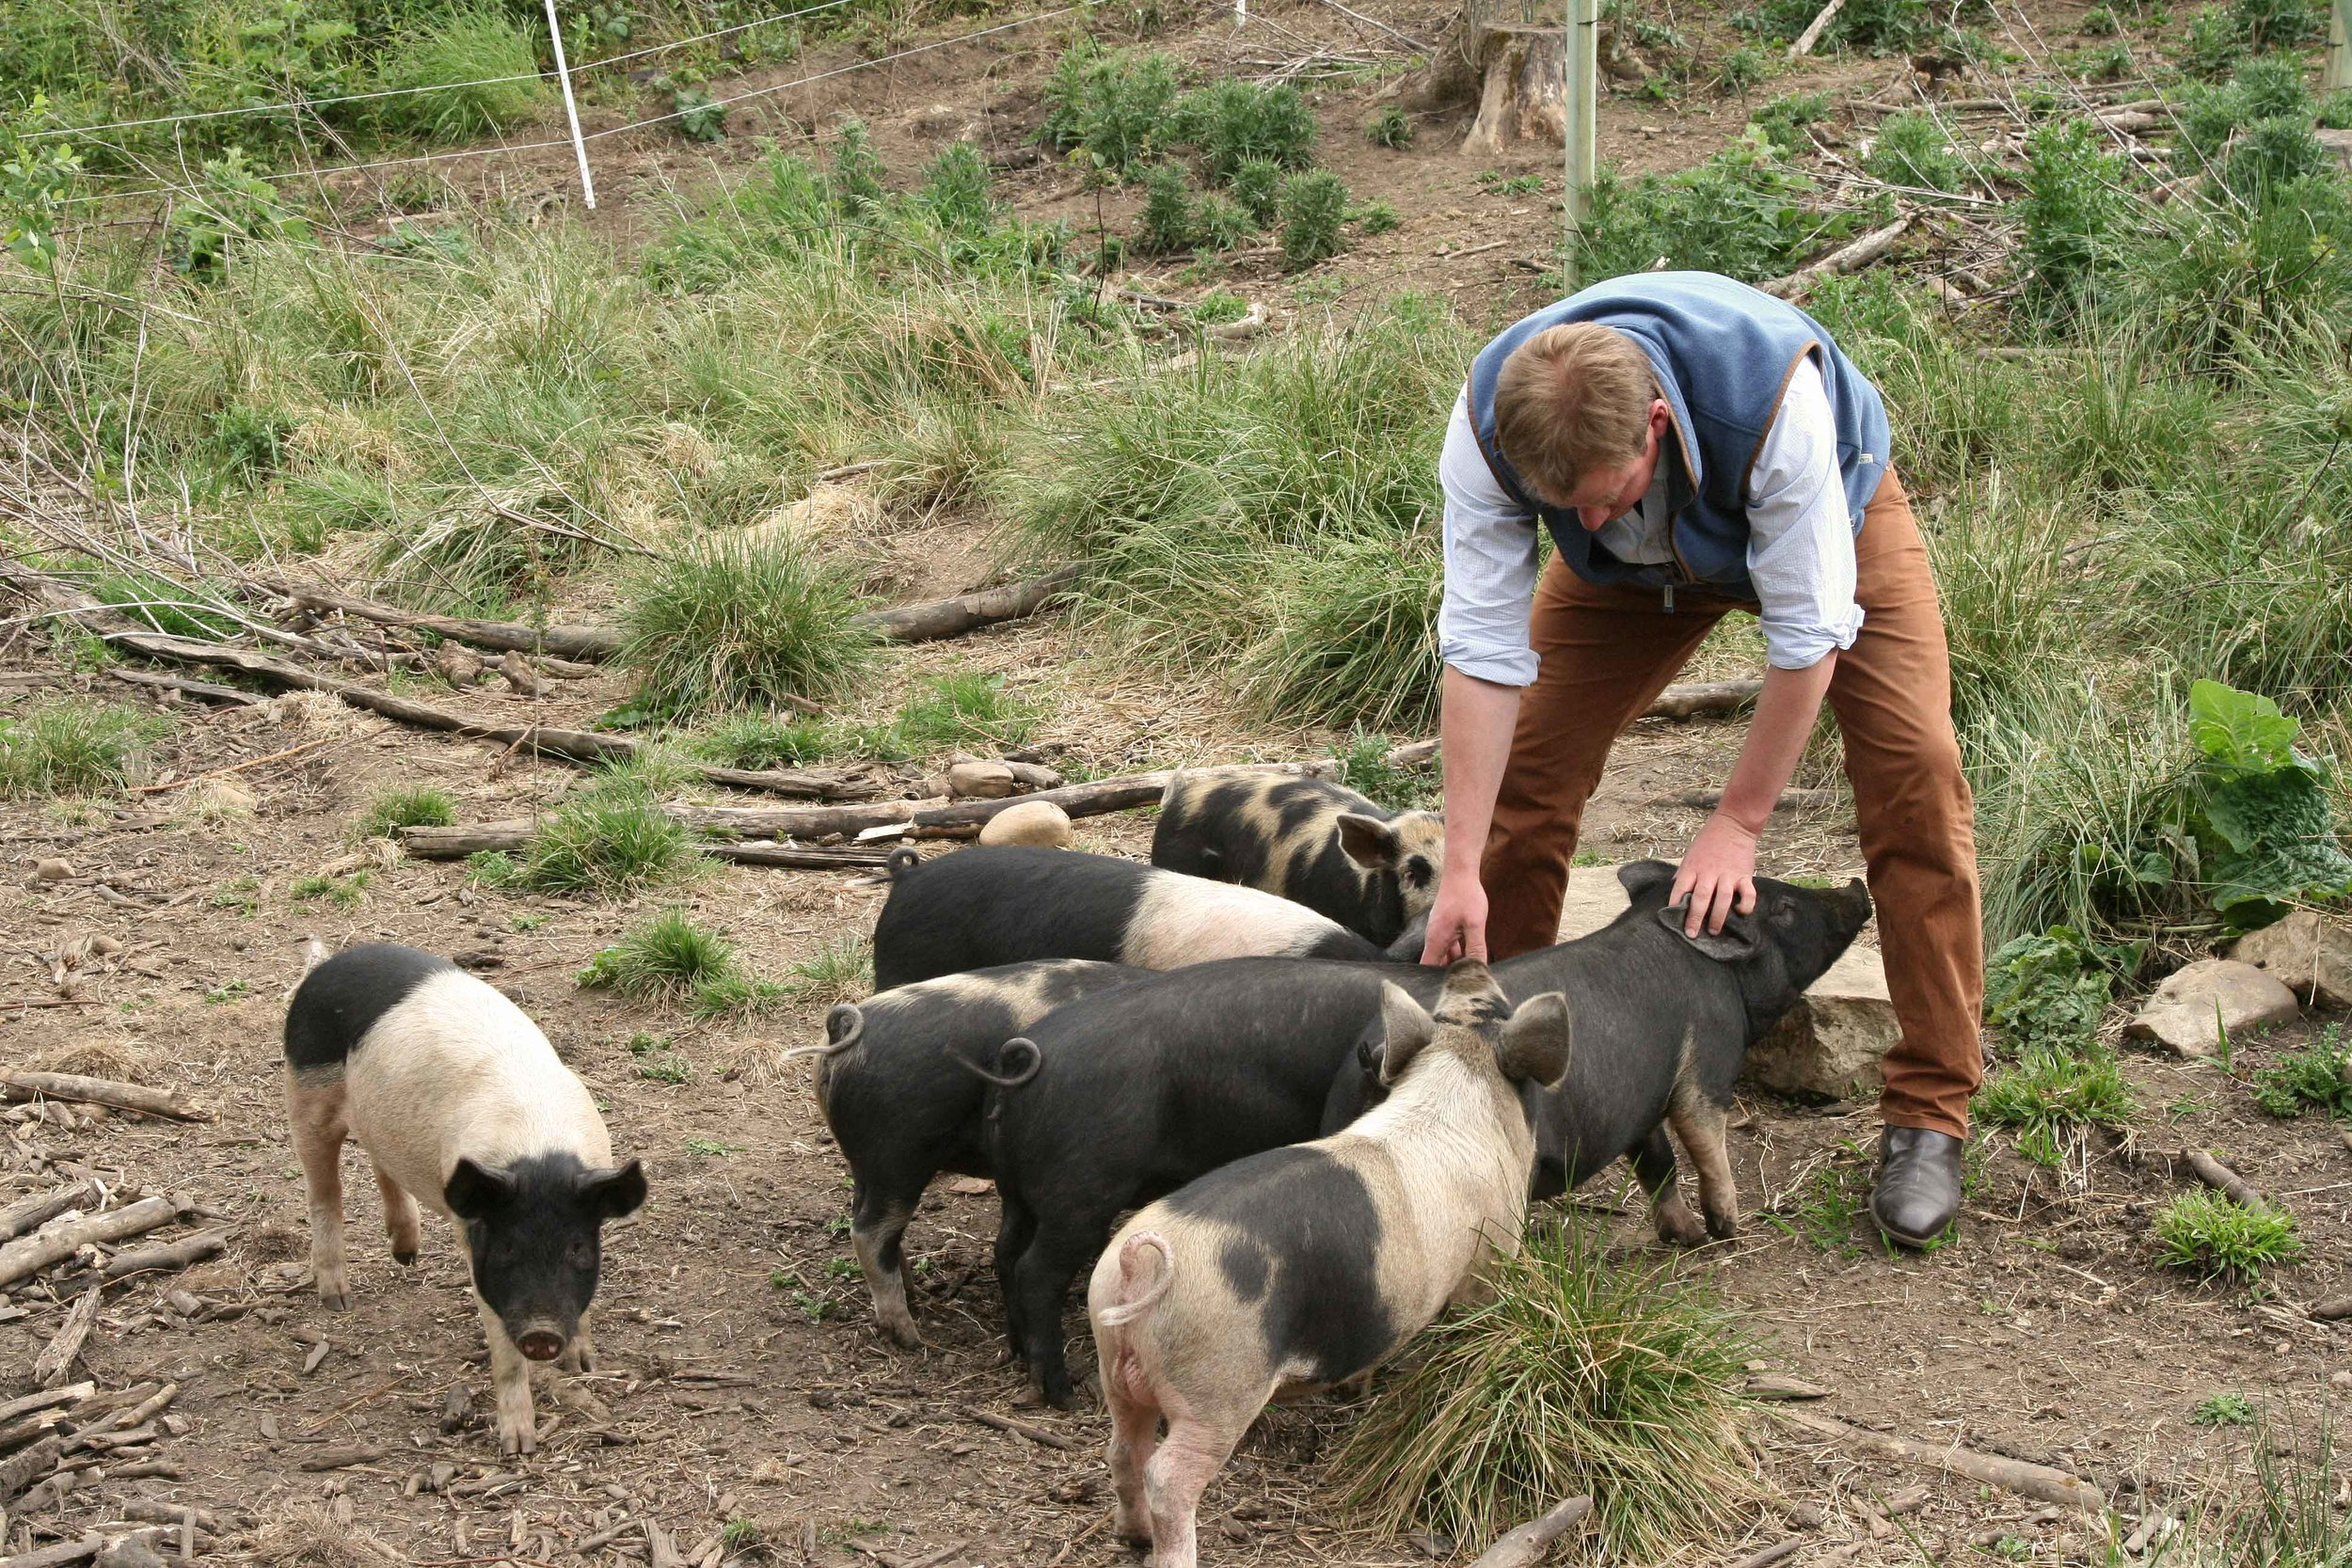 Charles and his pigs. Note the ground – almost completely cleared.